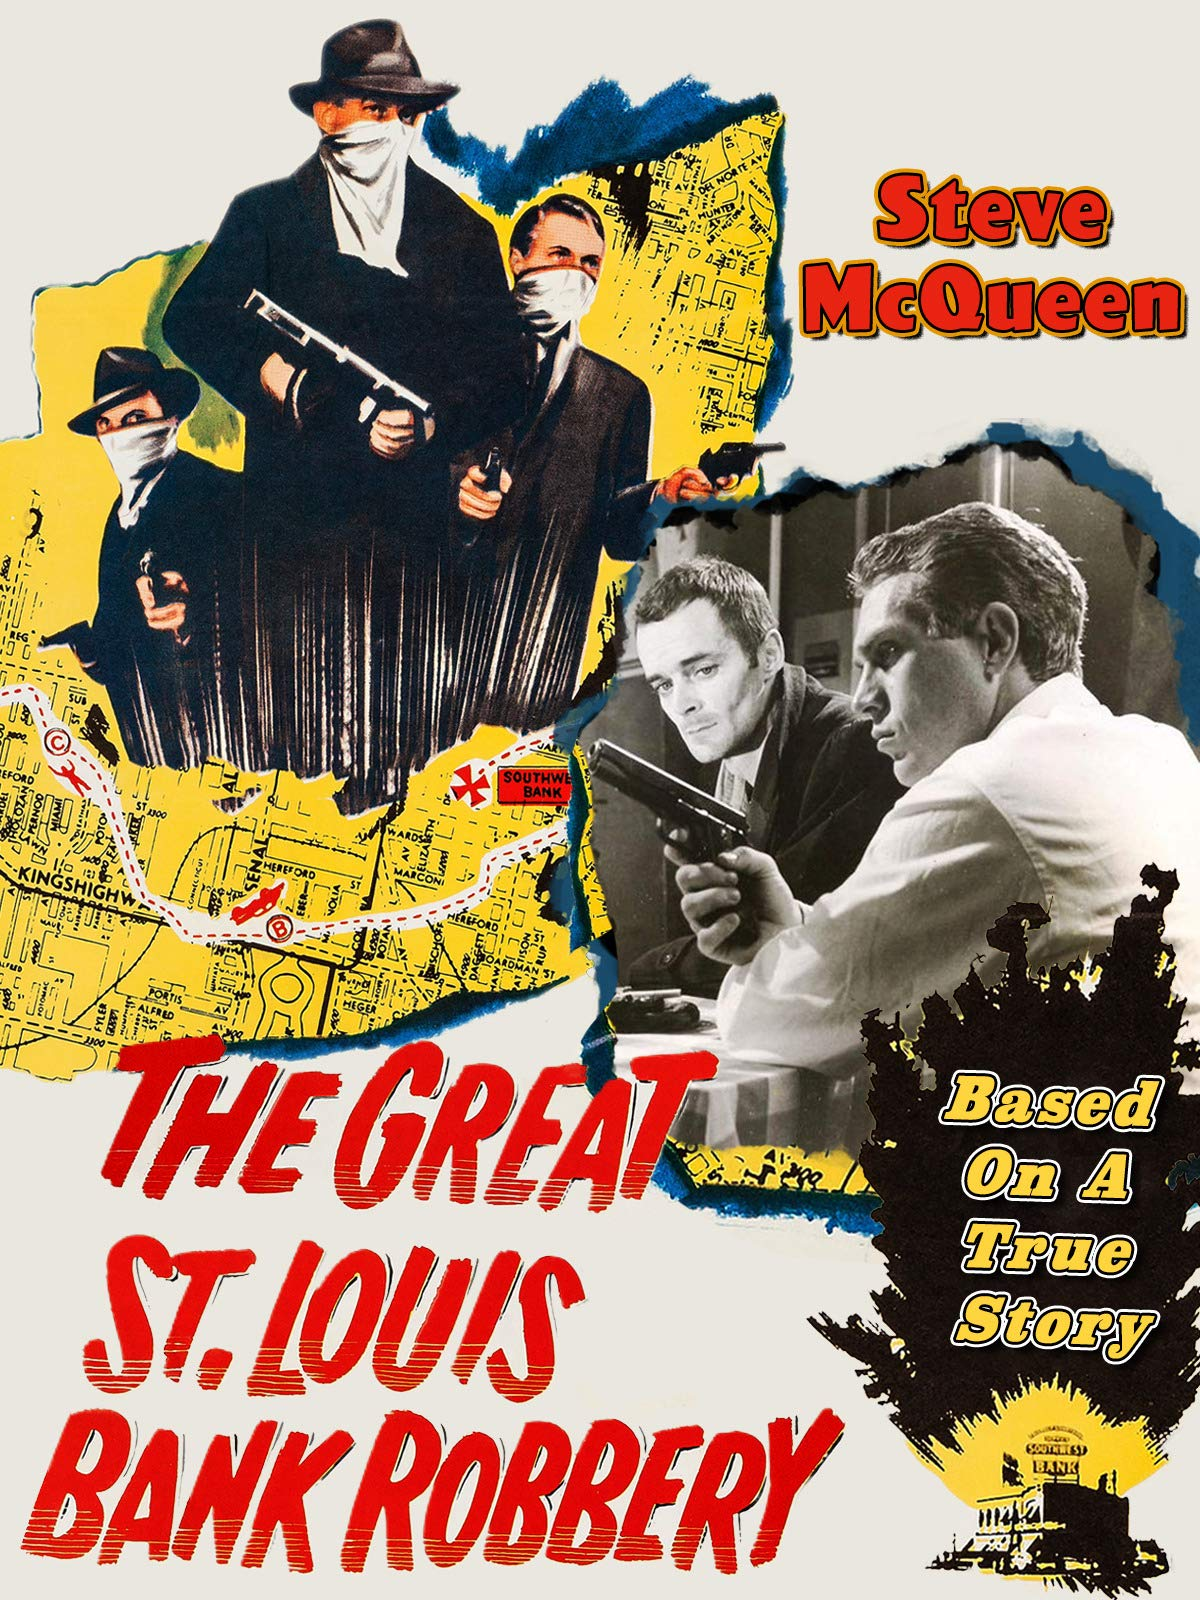 The Great St. Louis Bank Robbery - Steve McQueen, Based On A True Story on Amazon Prime Video UK